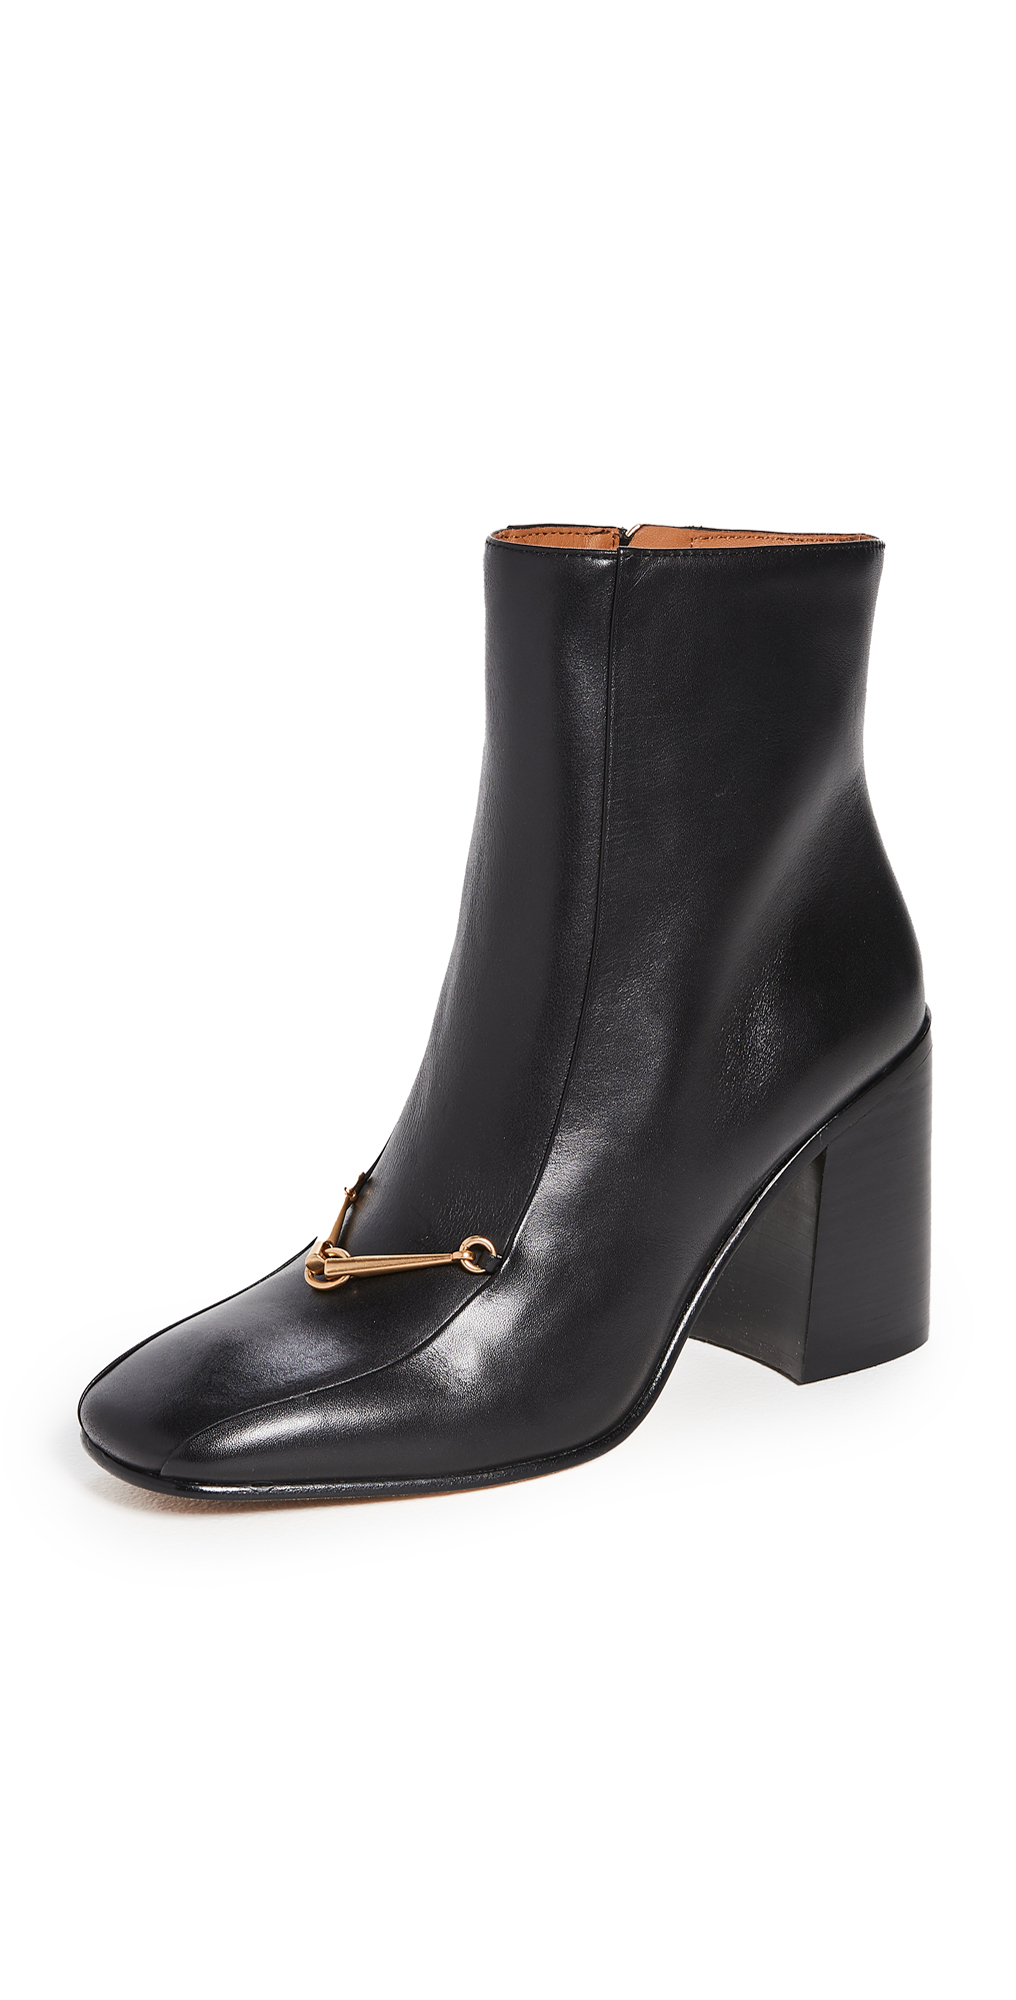 Tory Burch Equestrian Link 85mm Ankle Booties